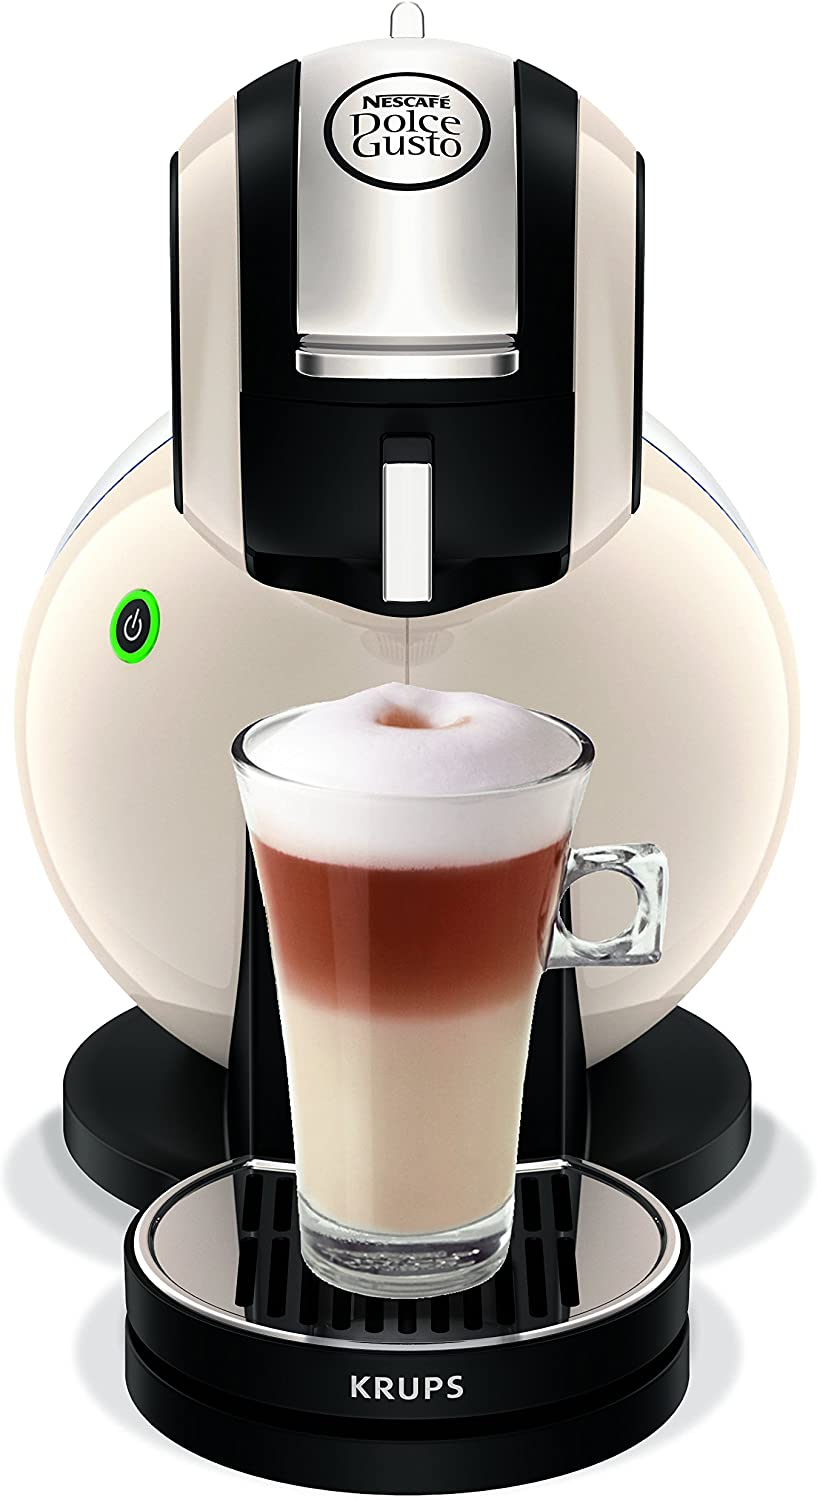 Nescafe Dolce Gusto Melody 3 Coffee Machine in Cream